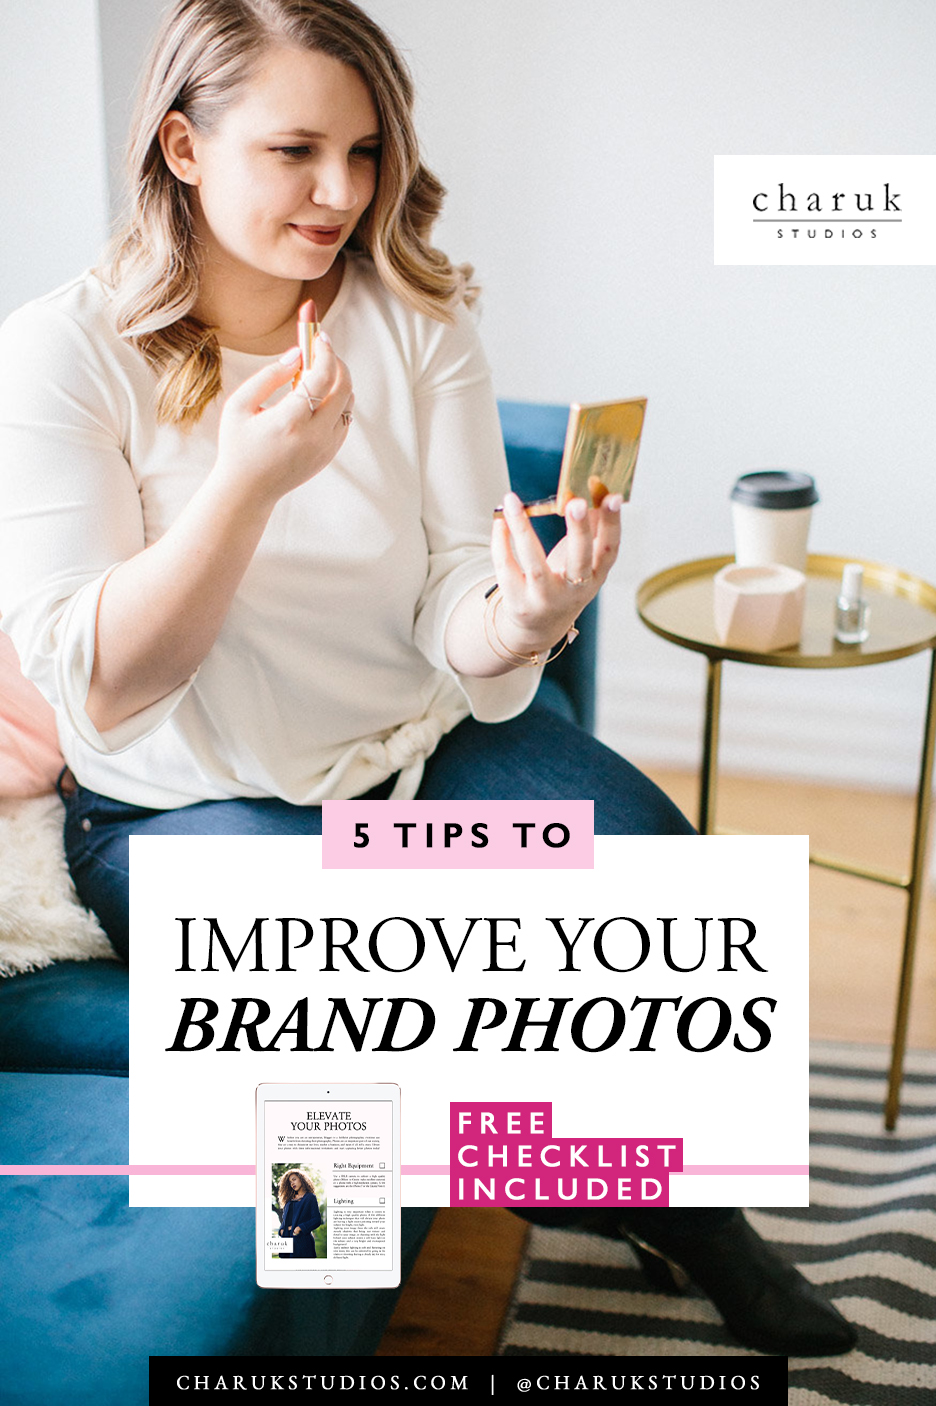 5 Tips to Improve Your Brand Photos by Charuk Studios